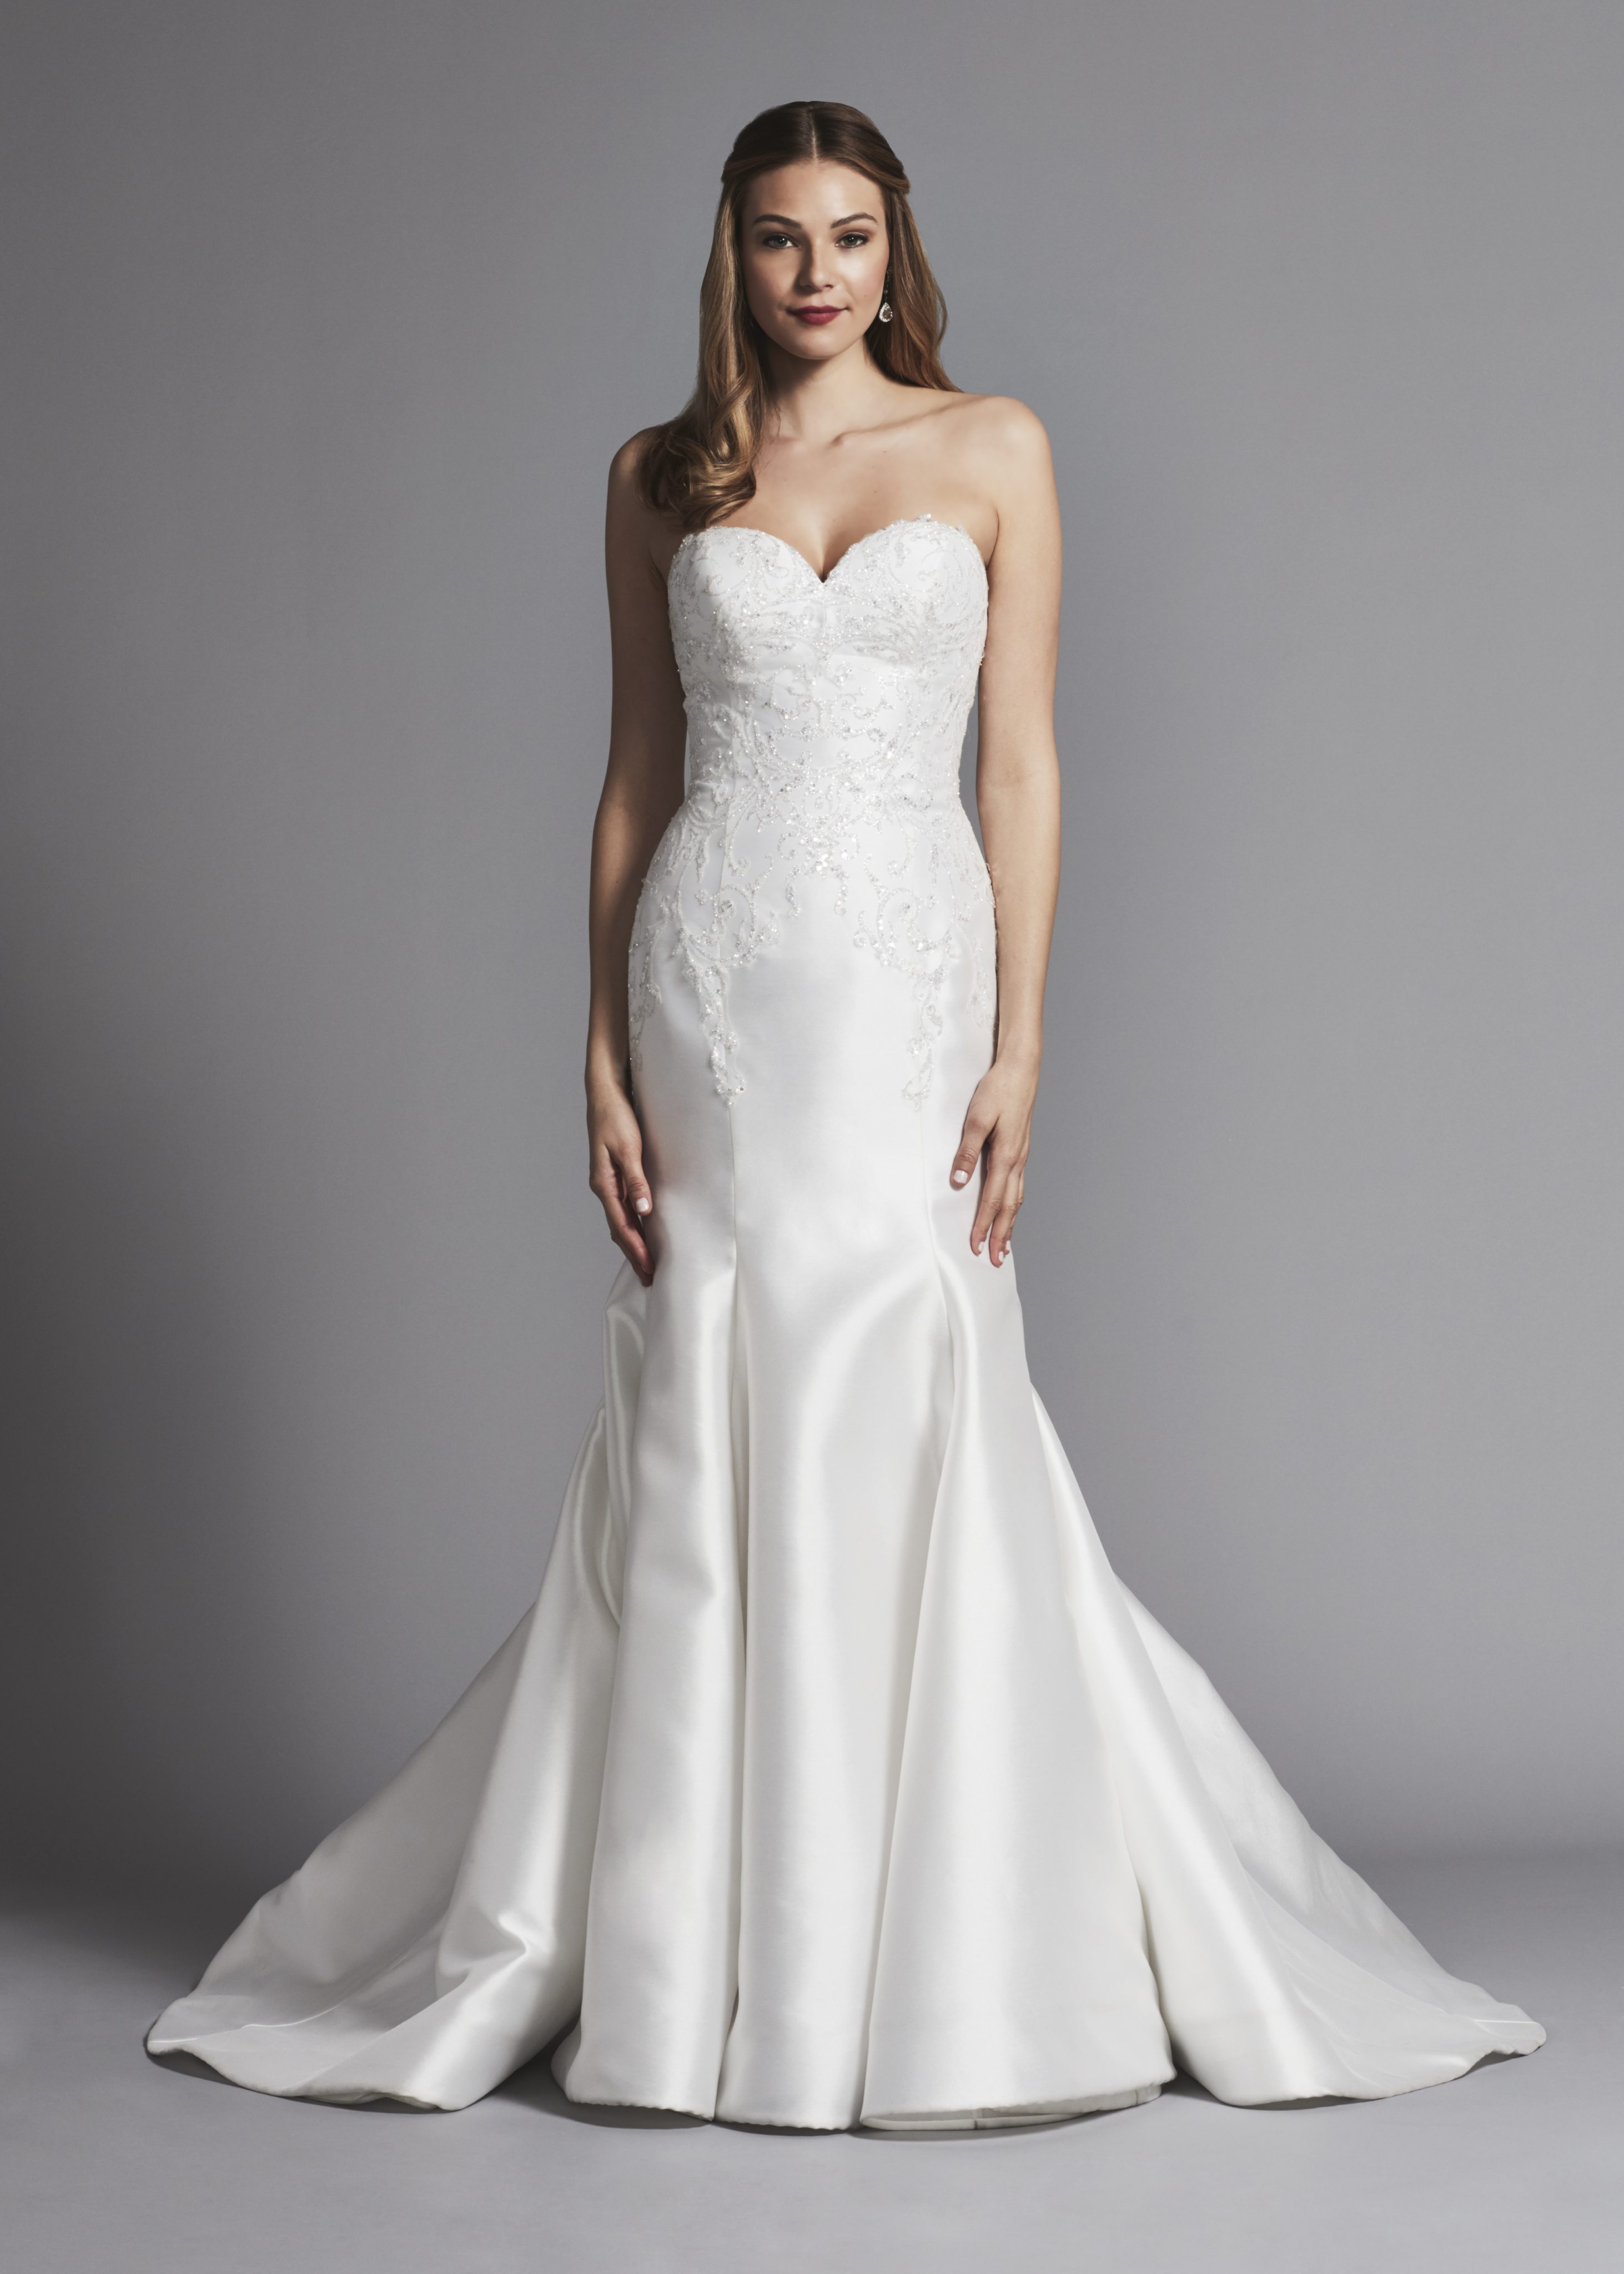 Pnina Tornai Ball Gown Wedding Dresses: Sweetheart Strapless Fit And Flare Wedding Dress